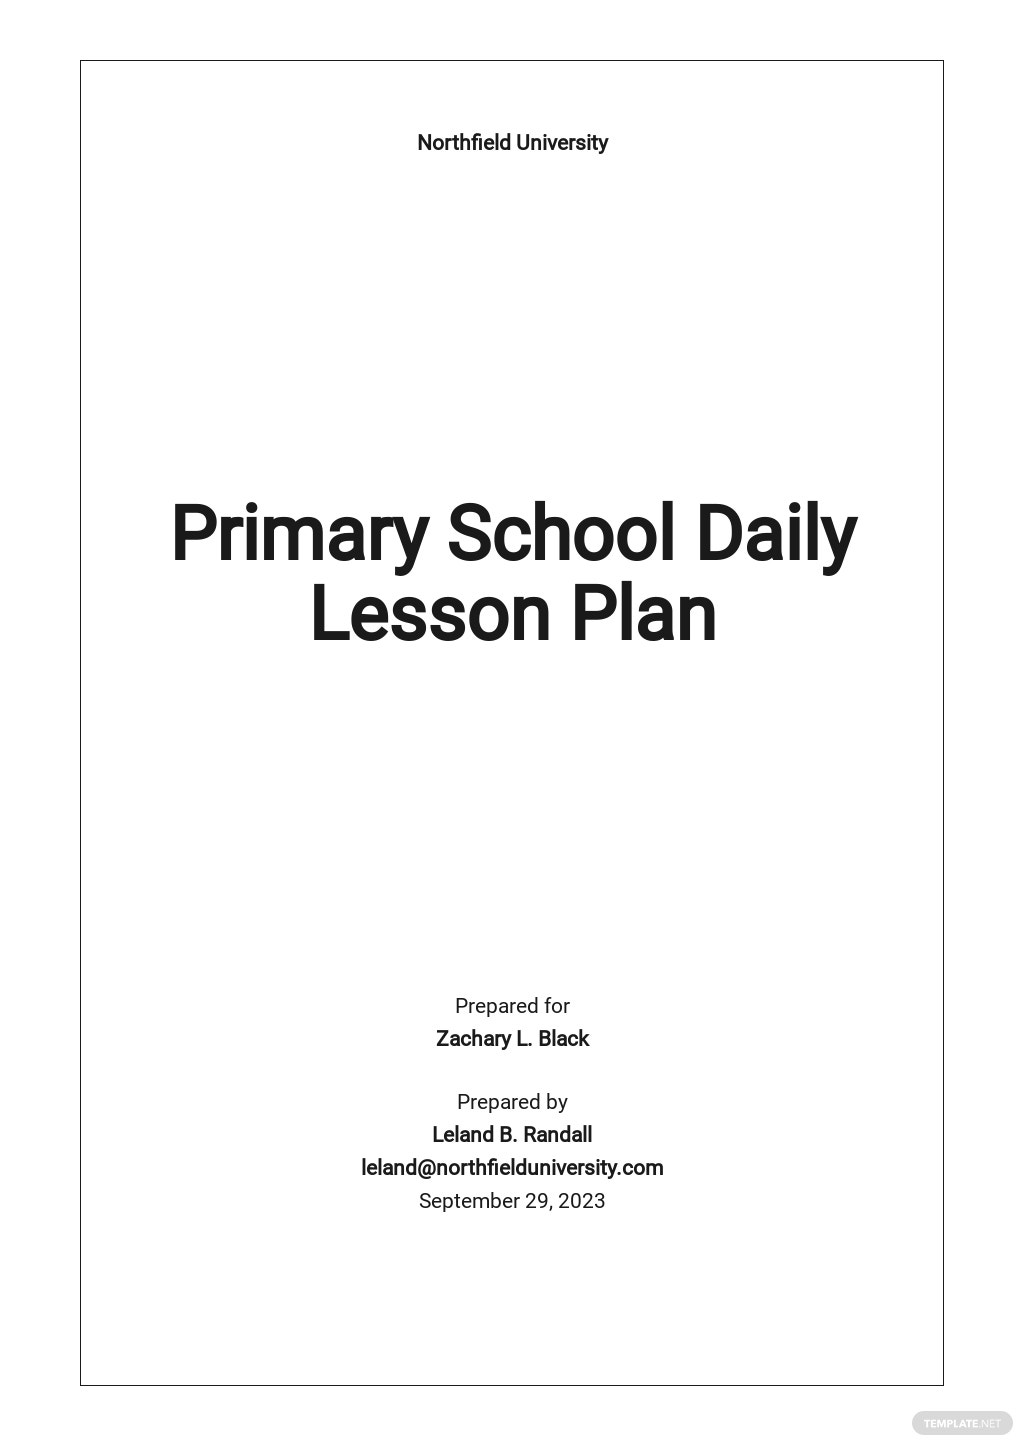 Primary School Daily Lesson Plan Template.jpe